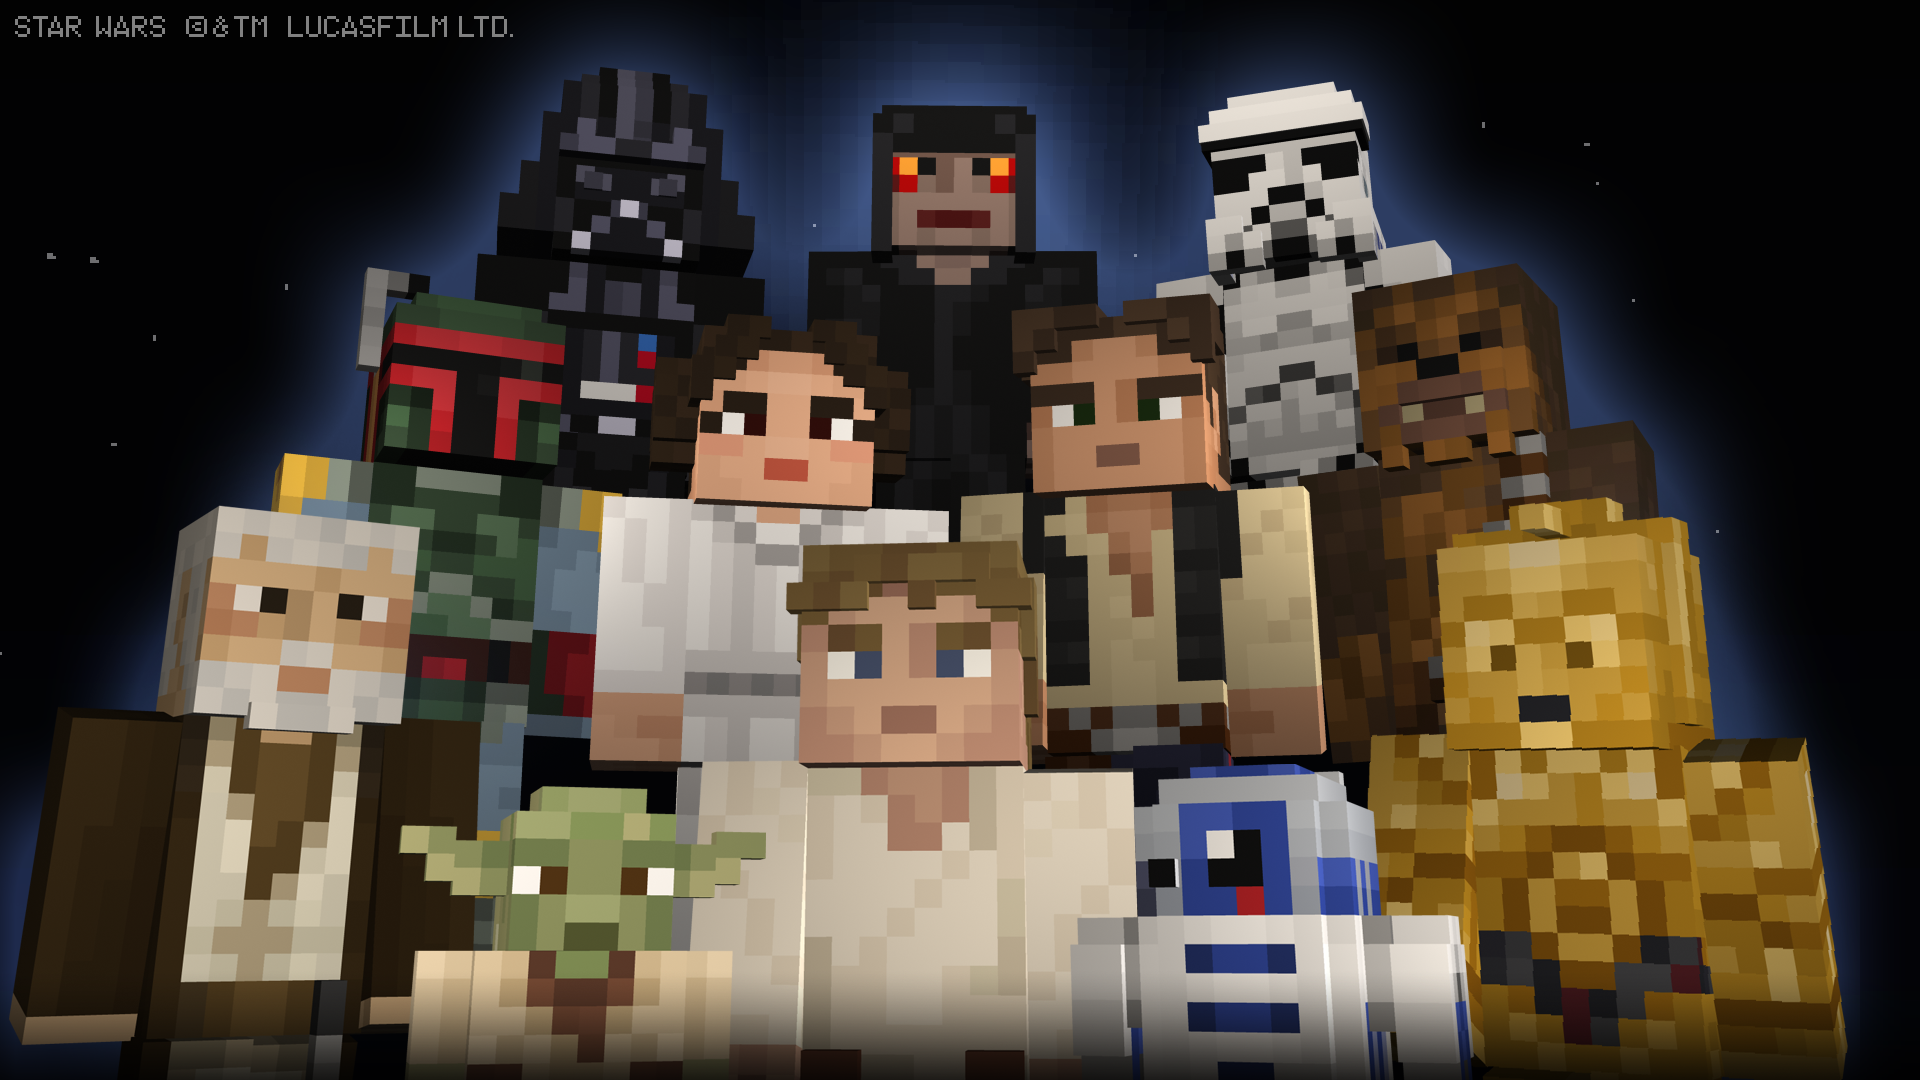 Star Wars Skins Bring The Force To Minecraft Starwars Com Star Wars Gifts Minecraft Skins Minecraft Skin